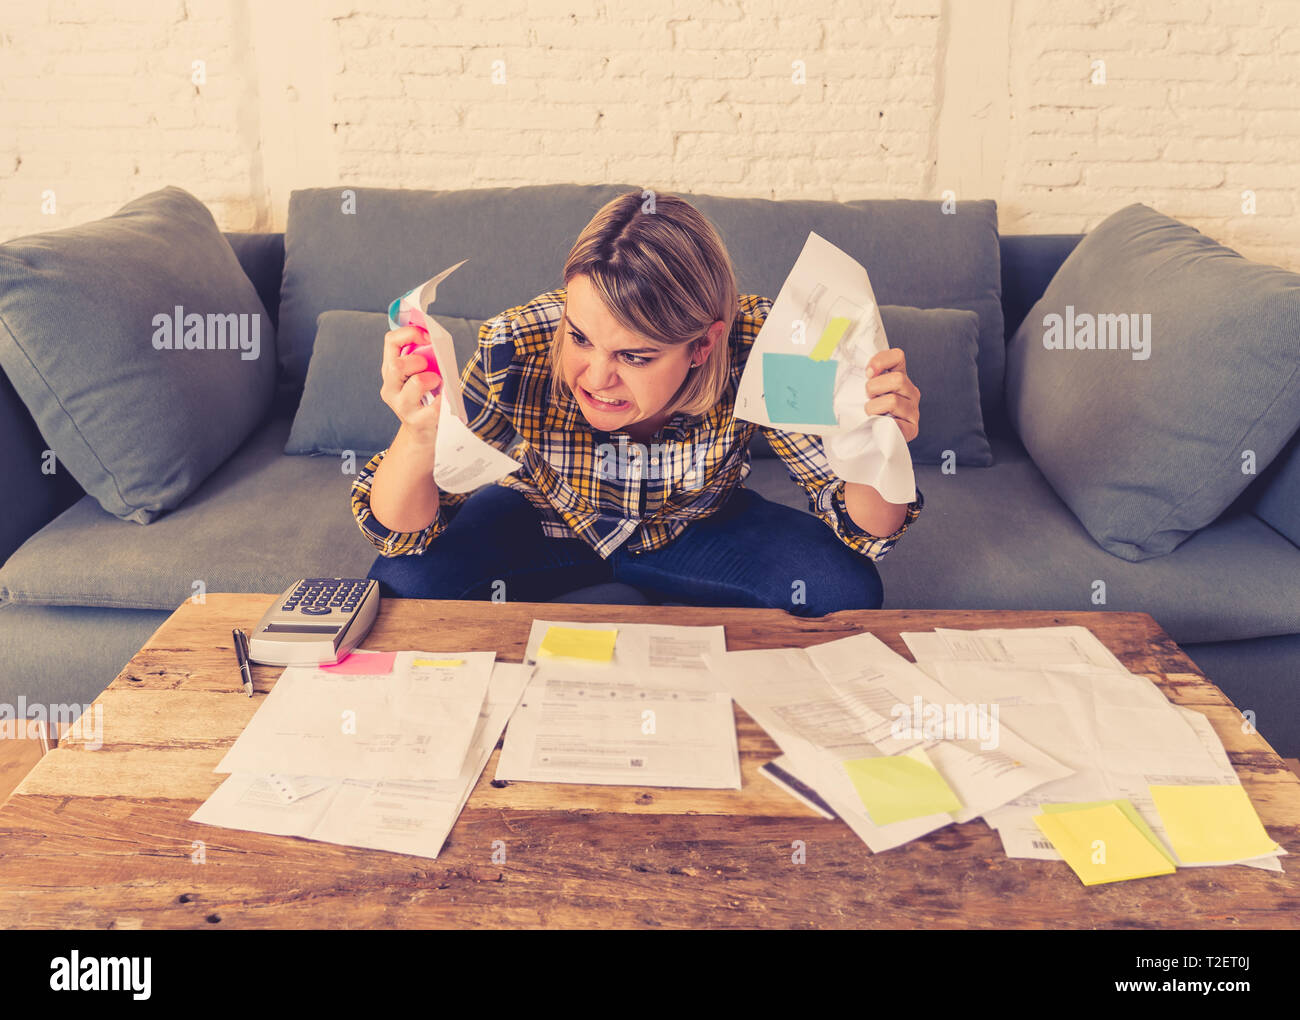 Portrait of furious and desperate young woman feeling stressed while working through finances. Sitting on the sofa making angry gestures. In paying de - Stock Image